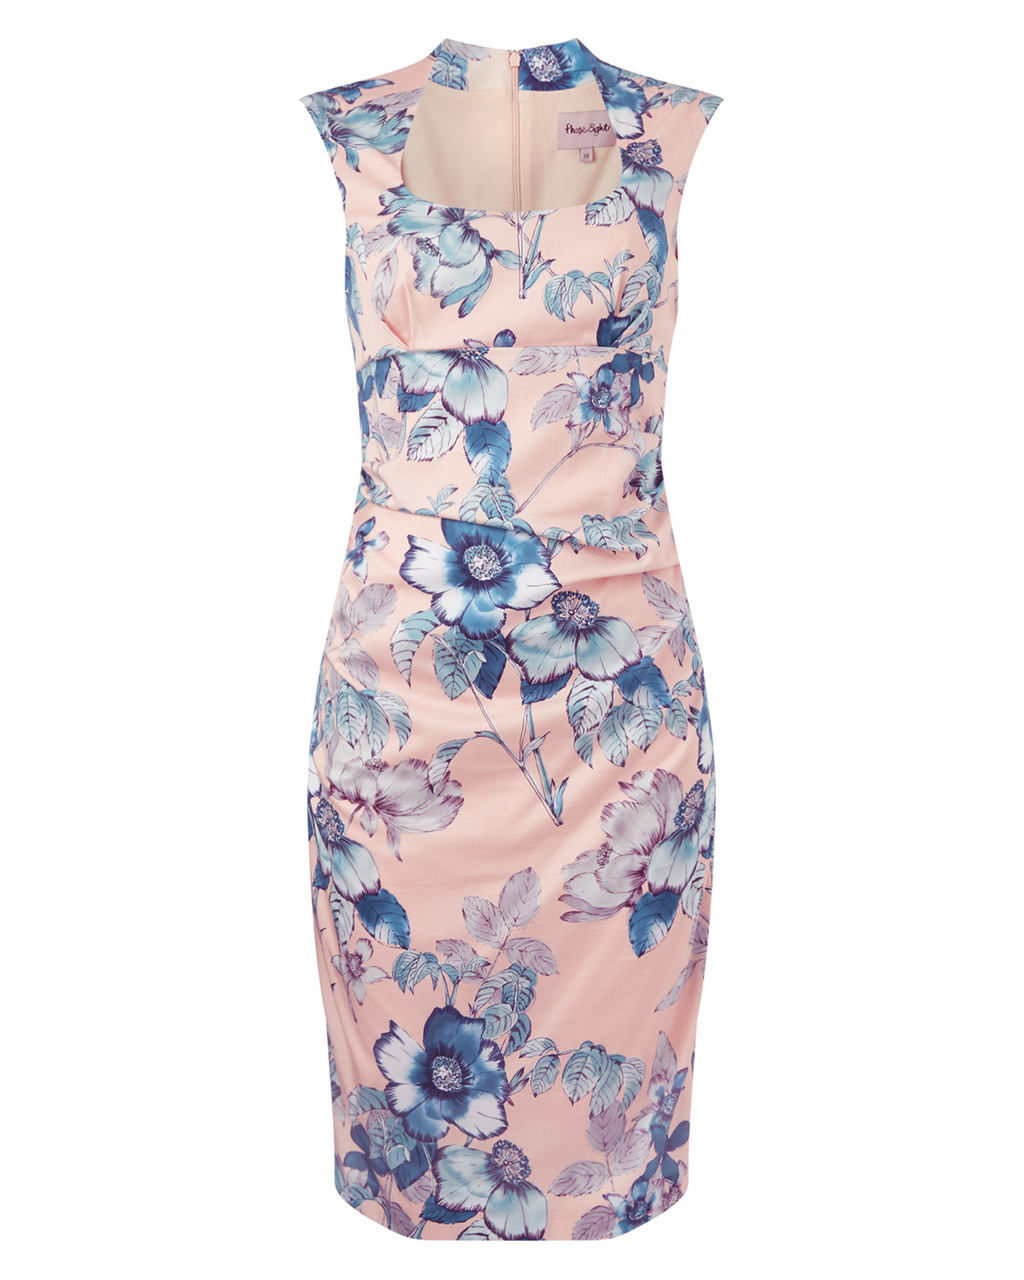 Rapunzel Print Dress - sleeve style: capped; style: bodycon; predominant colour: blush; secondary colour: pale blue; occasions: evening, occasion; length: on the knee; fit: body skimming; neckline: scoop; fibres: cotton - stretch; sleeve length: short sleeve; pattern type: fabric; pattern: florals; texture group: woven light midweight; trends: exotic blooms; season: s/s 2015; multicoloured: multicoloured; wardrobe: event